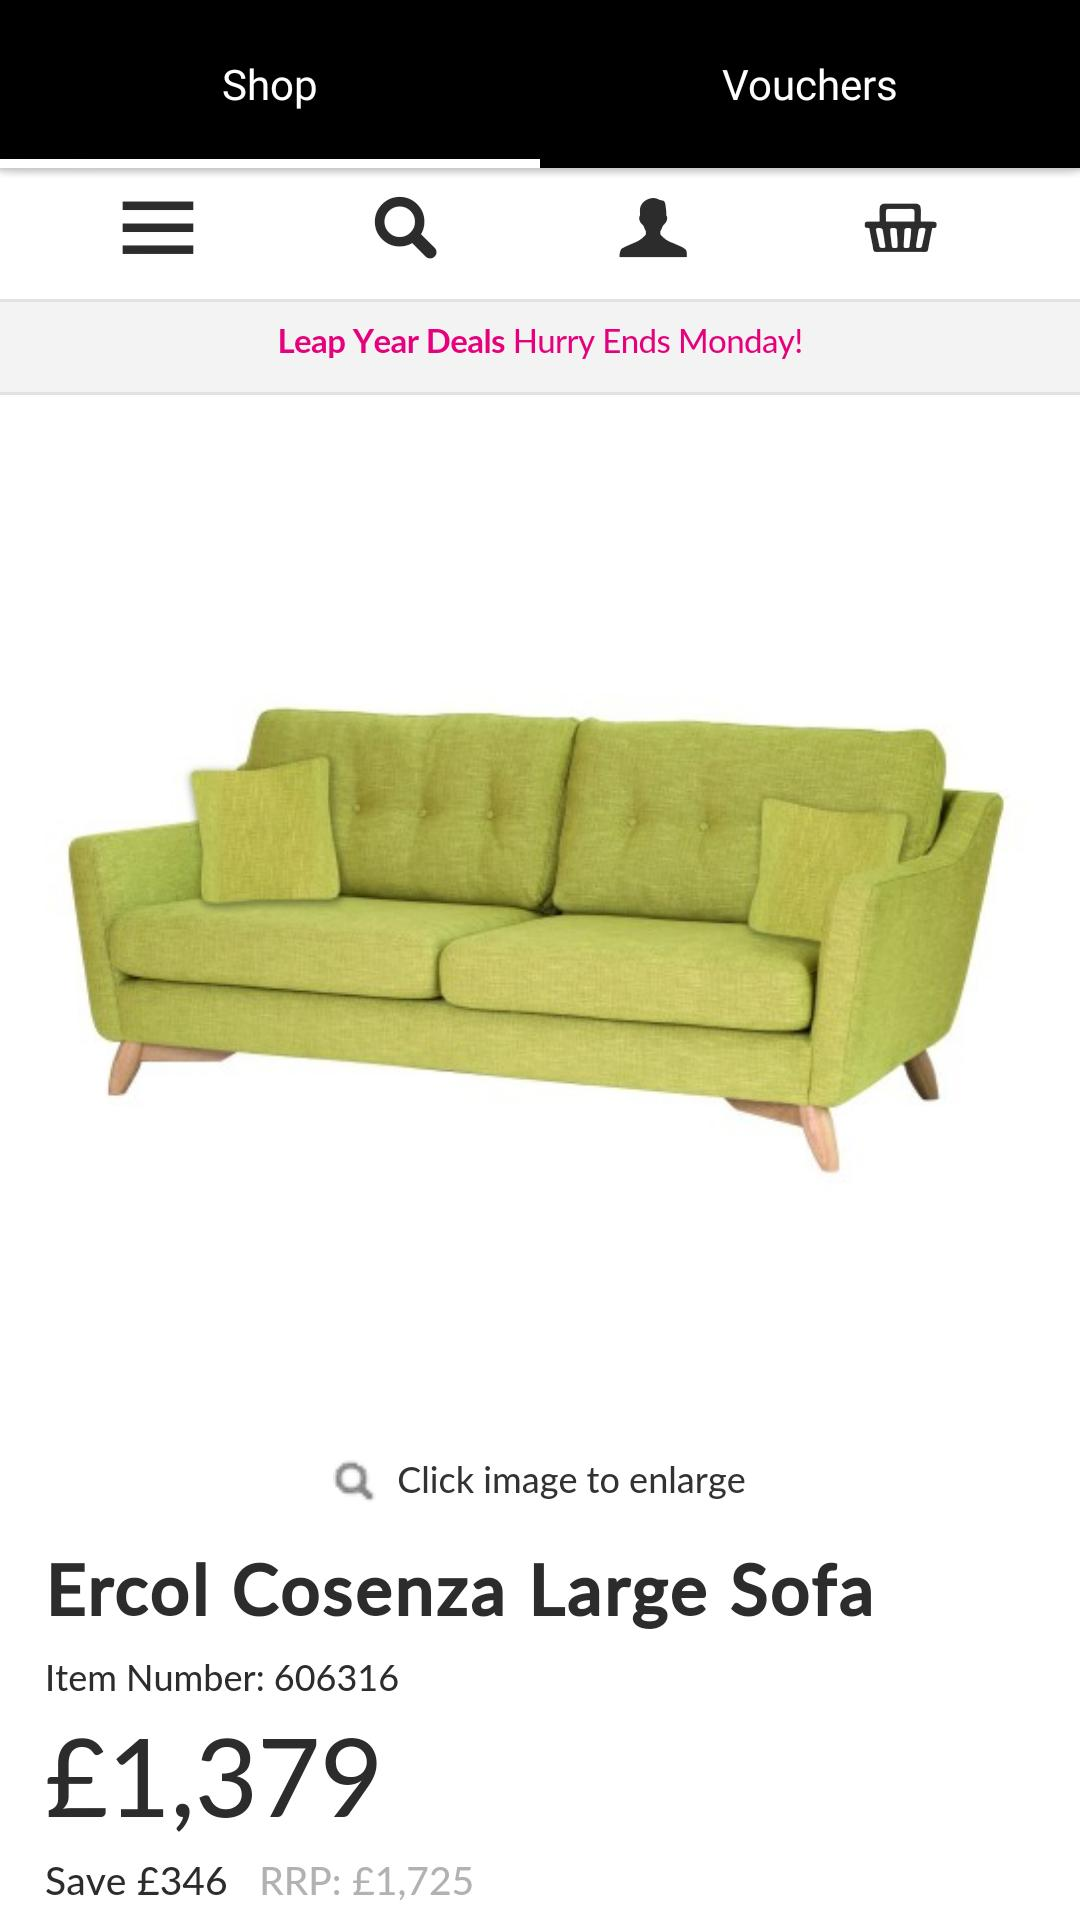 Magnificent Offers For Leekes Furniture For Android Apk Download Ibusinesslaw Wood Chair Design Ideas Ibusinesslaworg